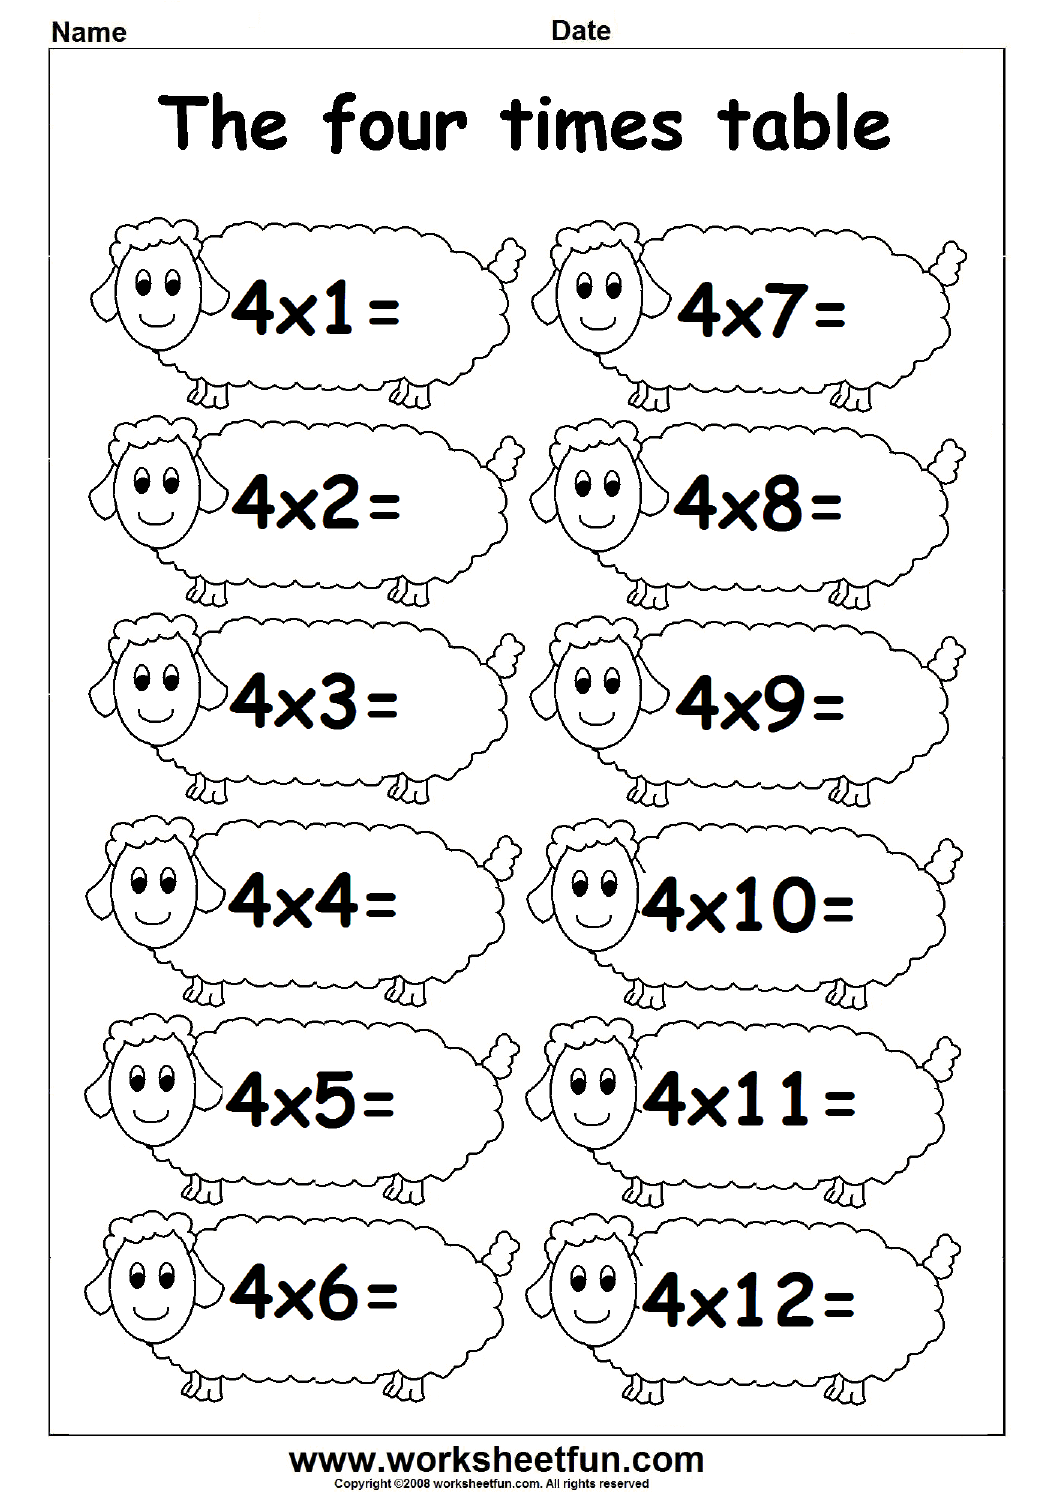 Pin By Www Worksheetfun Com On Printable Worksheets Multiplication Worksheets Times Tables Worksheets Multiplication Times Tables